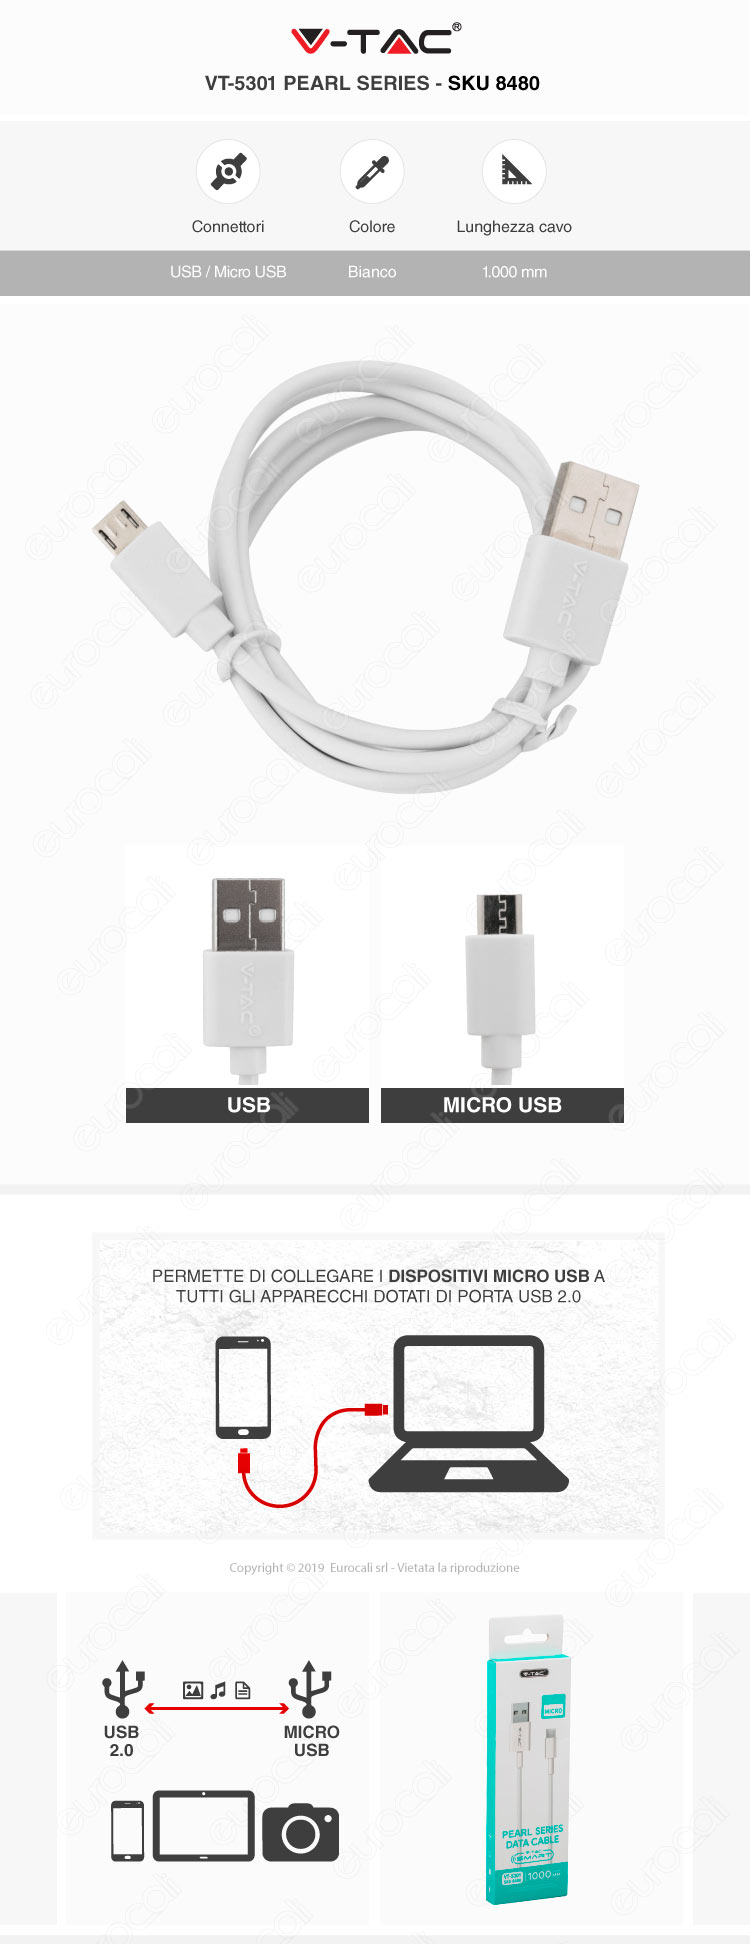 V-Tac VT-5301 Pearl series USB Data Cable Micro USB Cavo Colore Bianco 1m